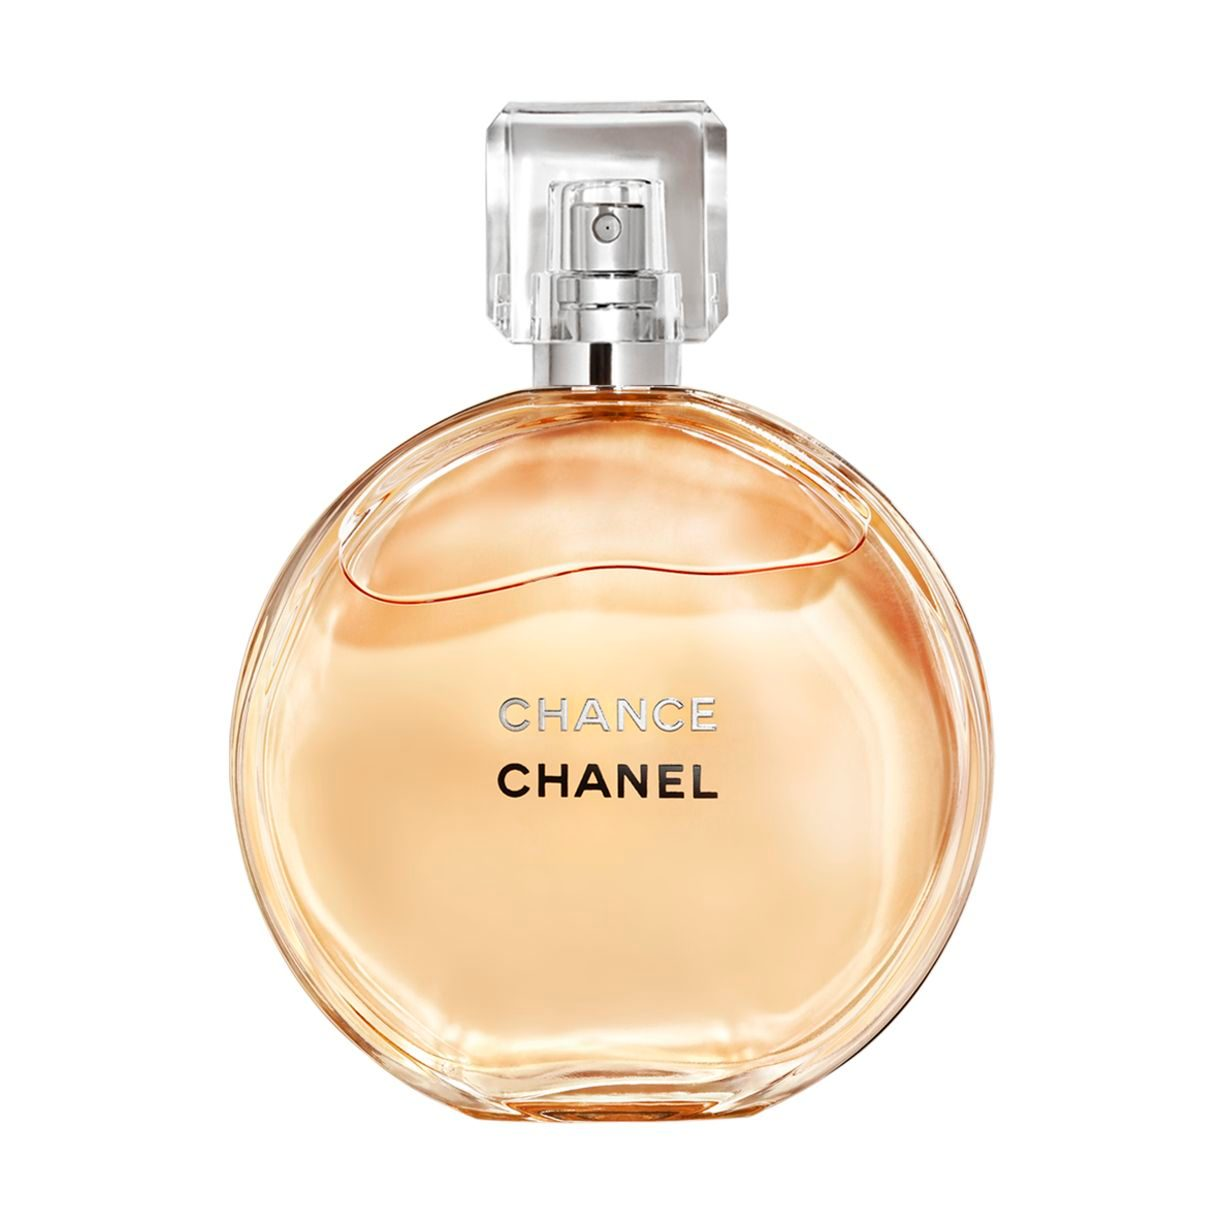 CHANCE EAU DE TOILETTE SPRAY 35ML